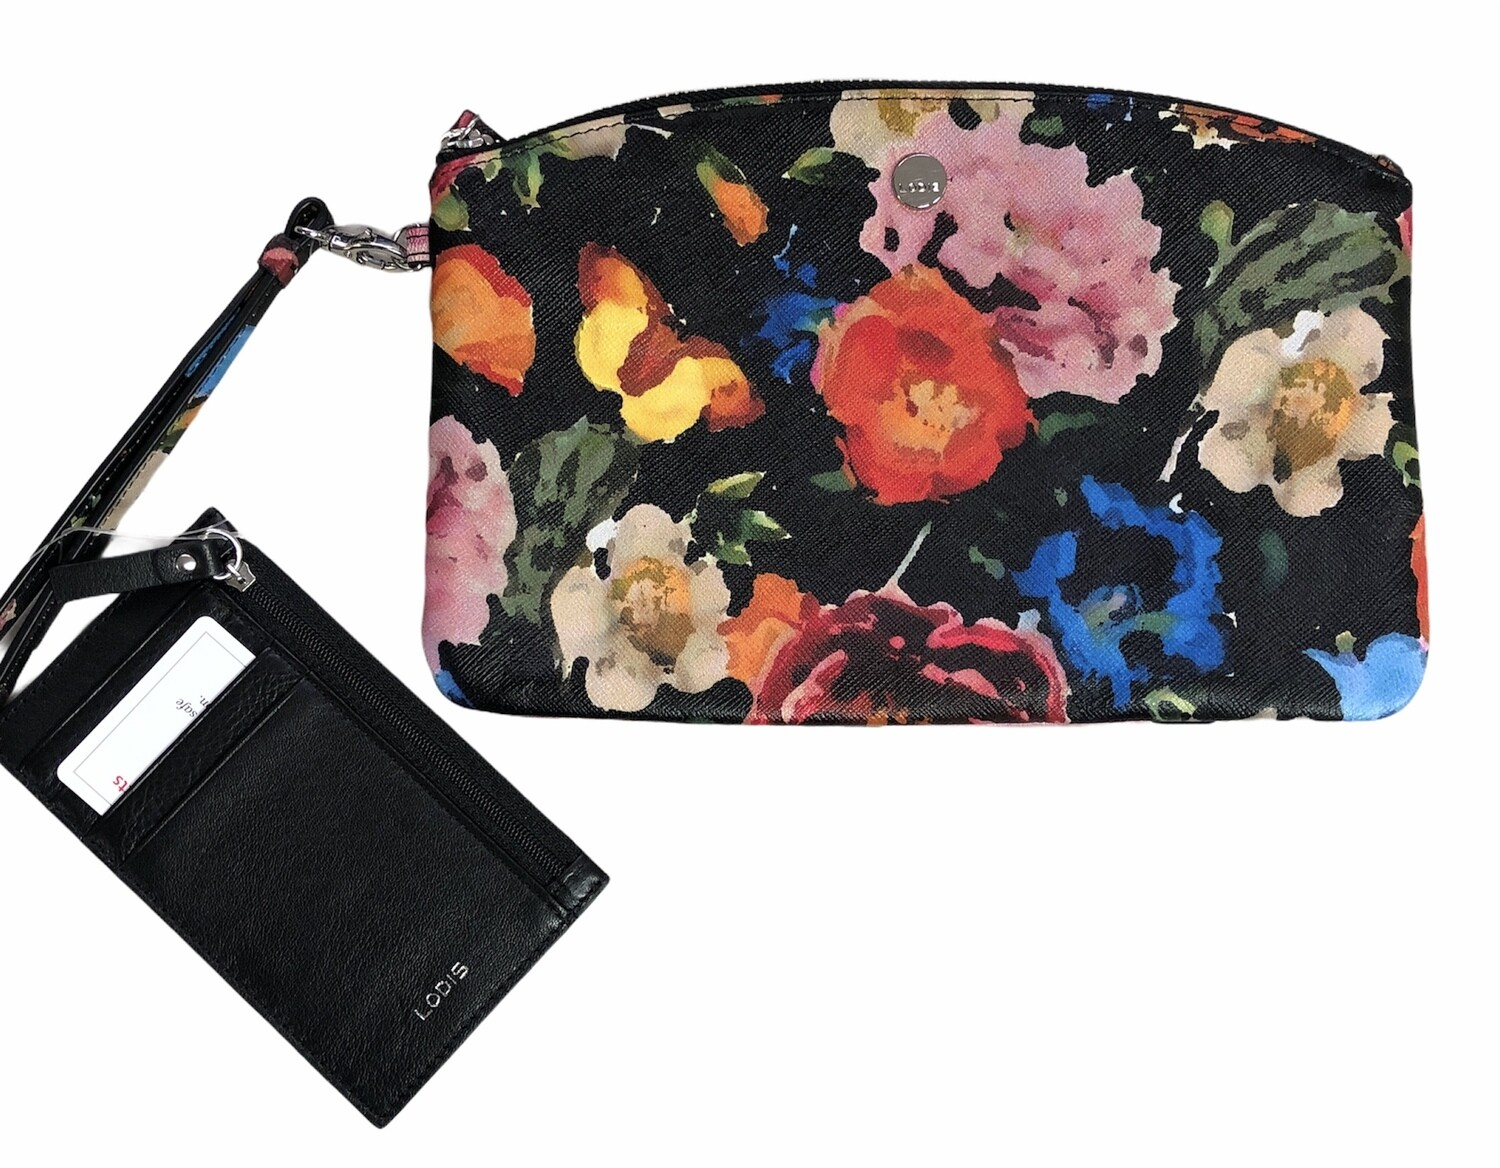 New LODIS Floral Leather Wristlet Pouch  with Black Leather Card Slot